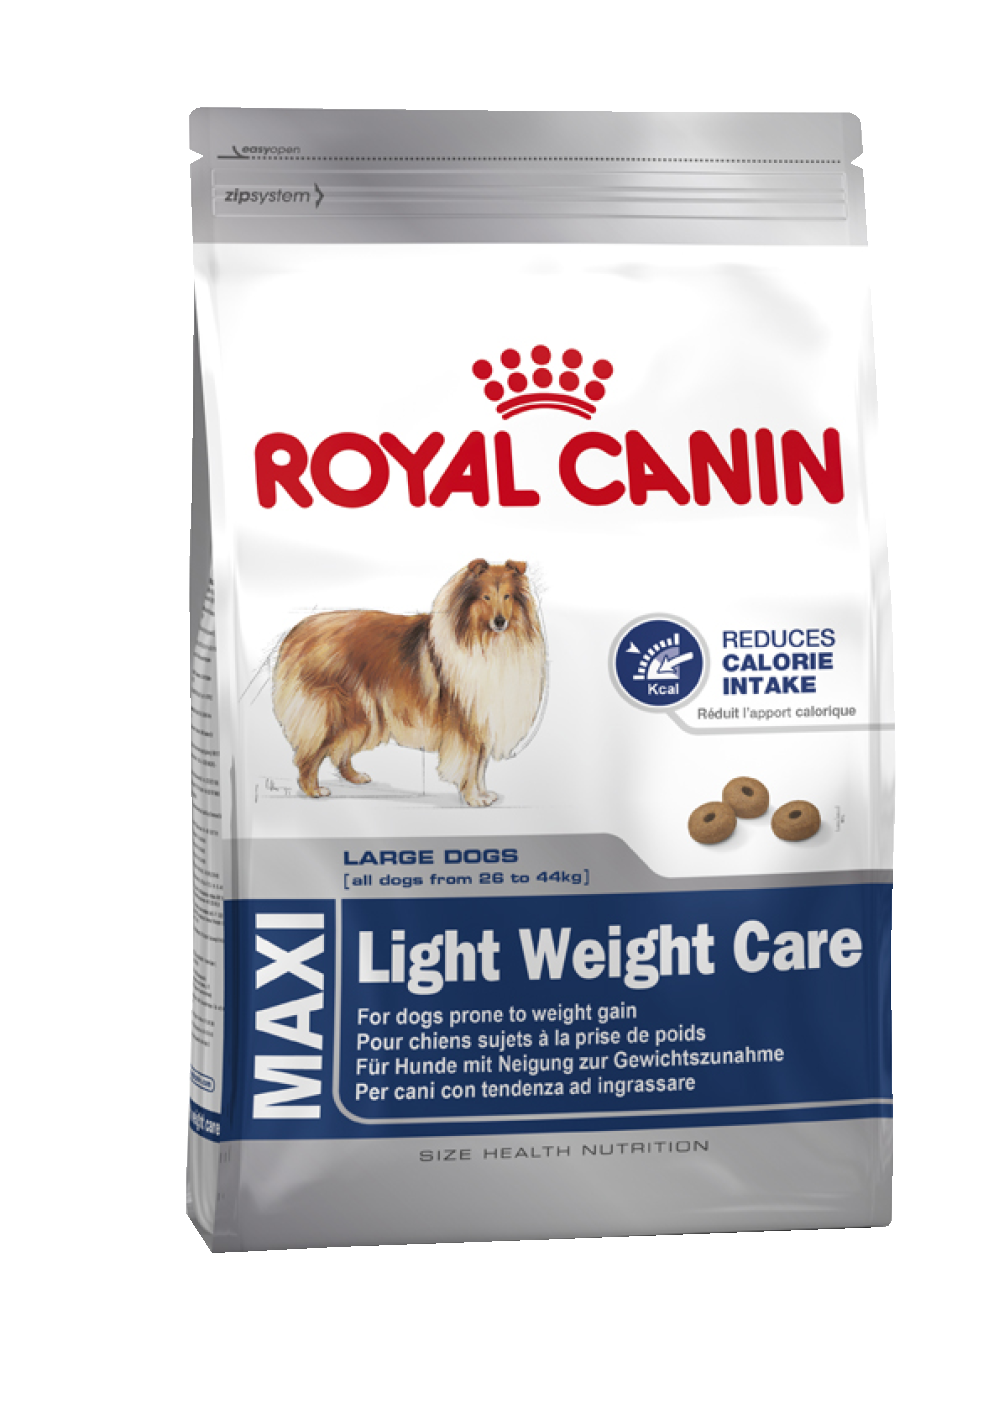 Корм Royal Canin для крупных cобак низкокалорийный, Maxi Light Weight Care